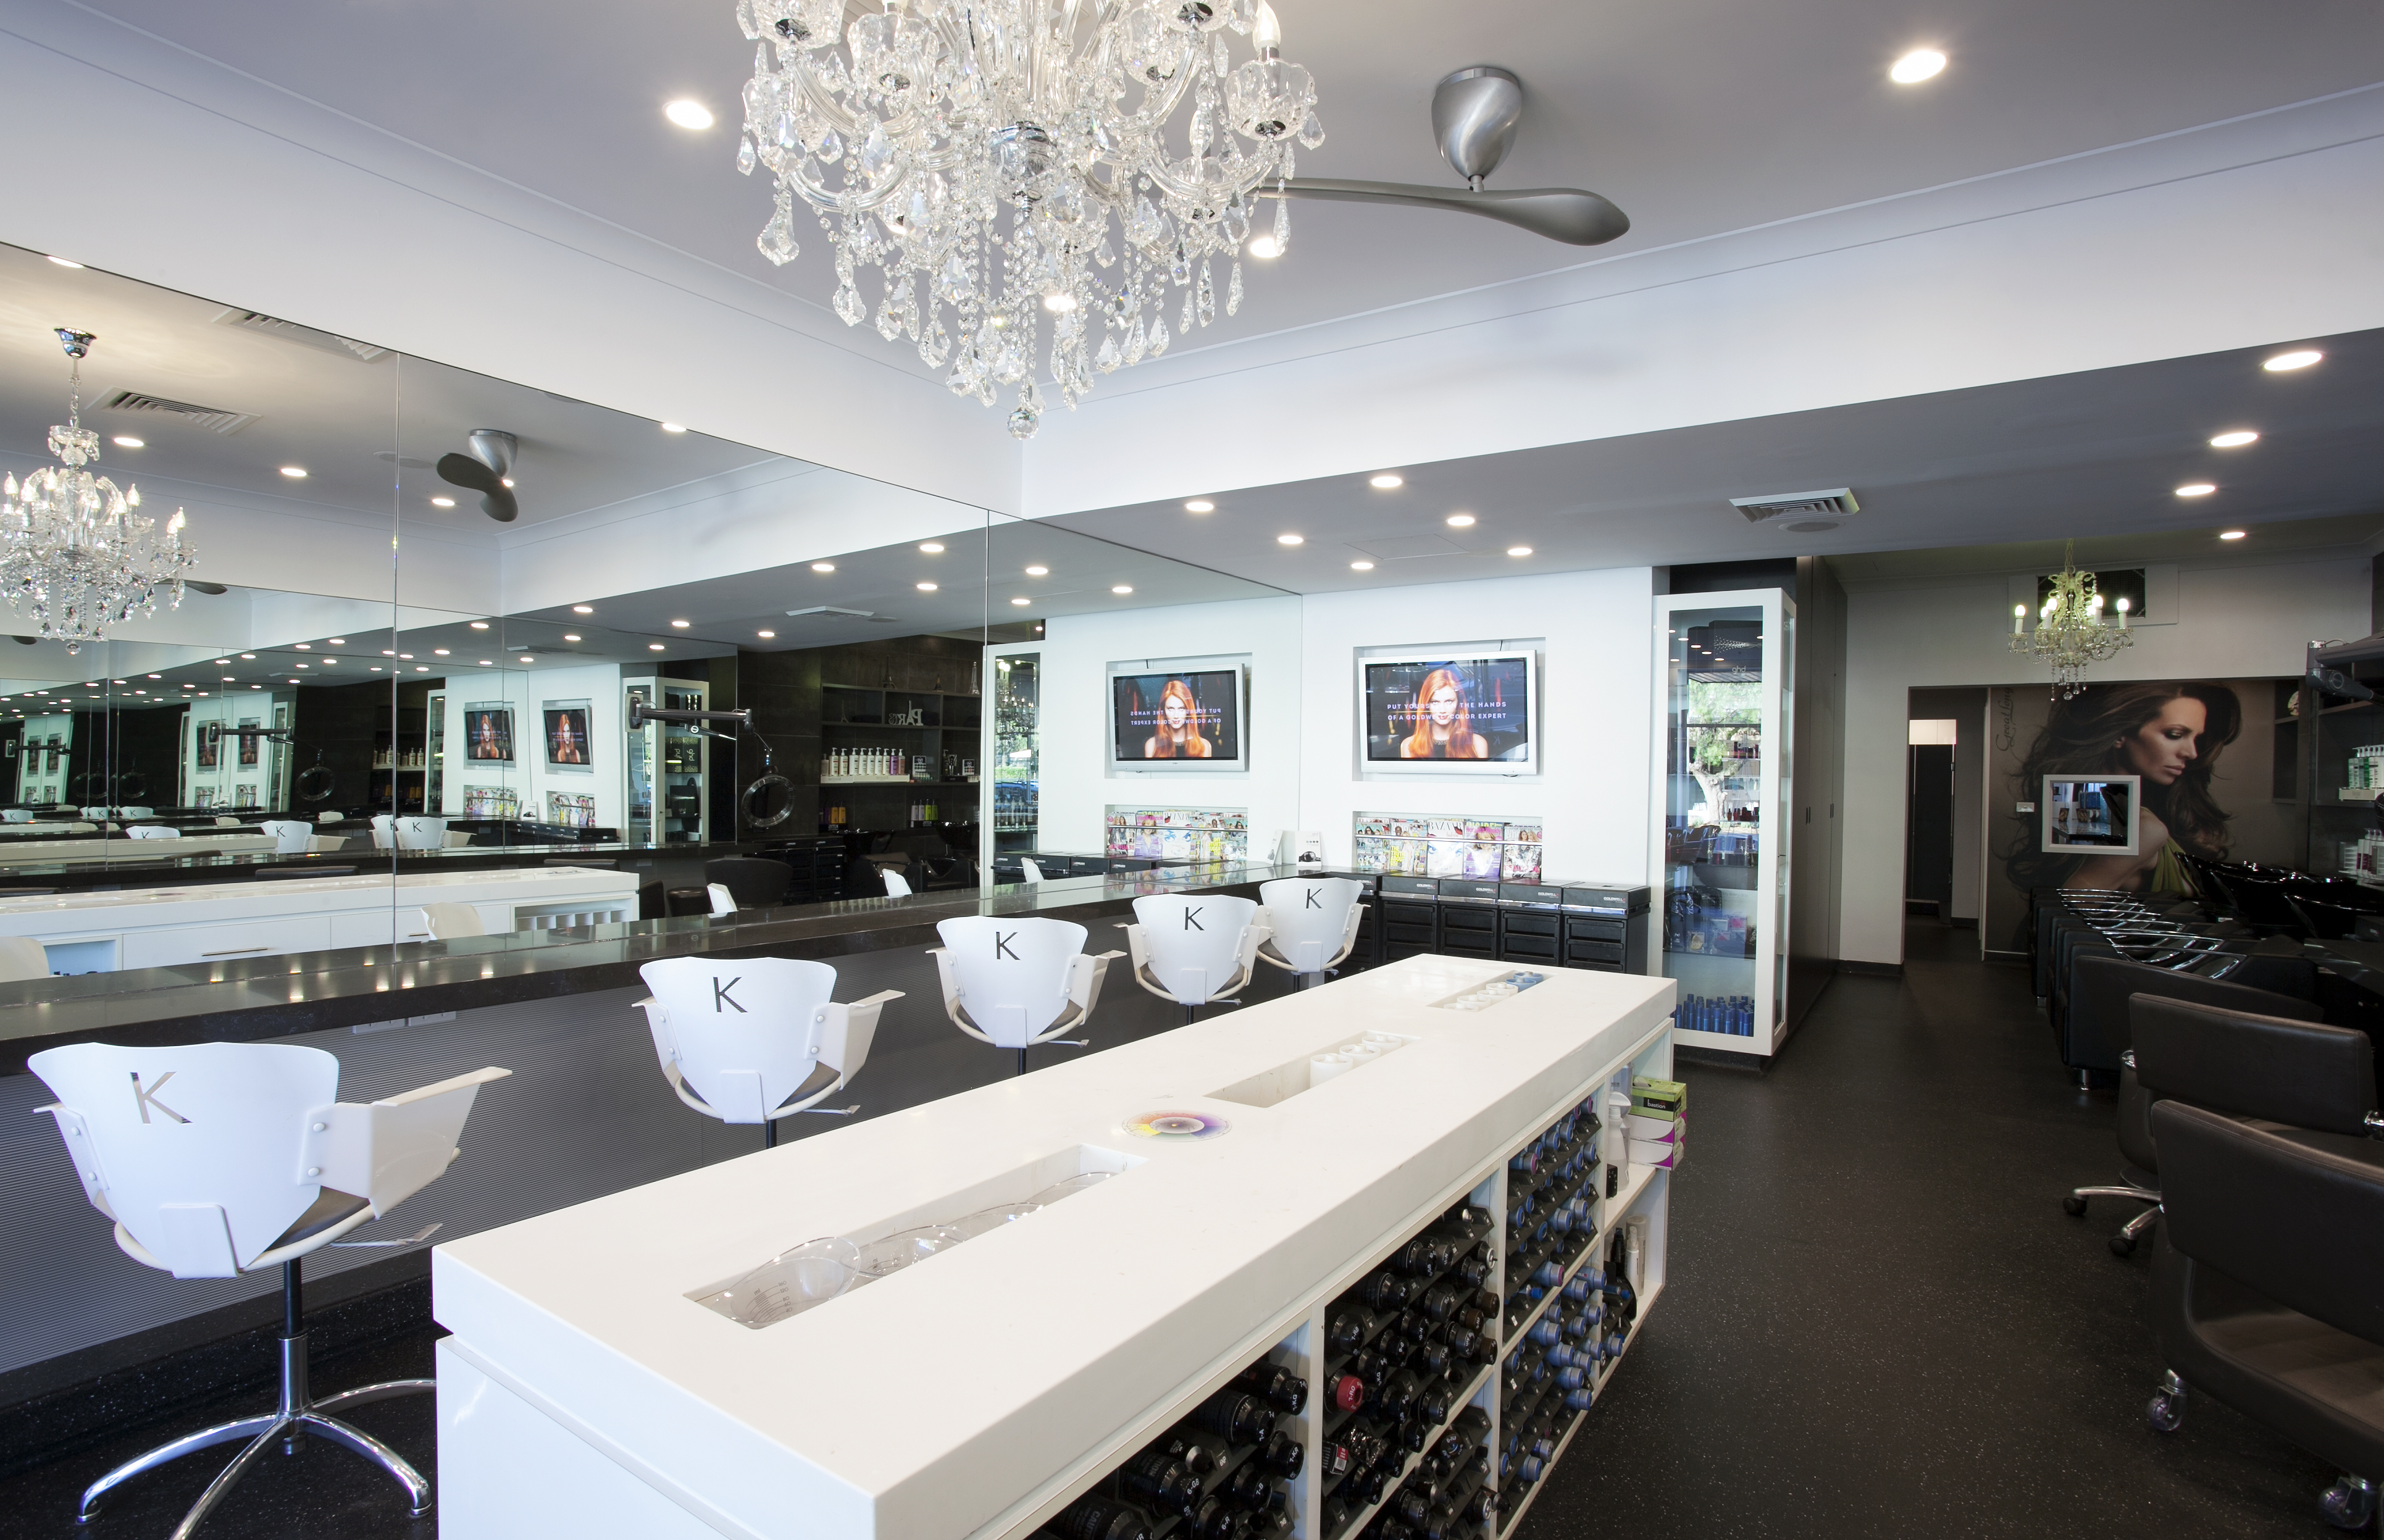 Commercial made in paris hair salon mosman 2013 for Salon design paris